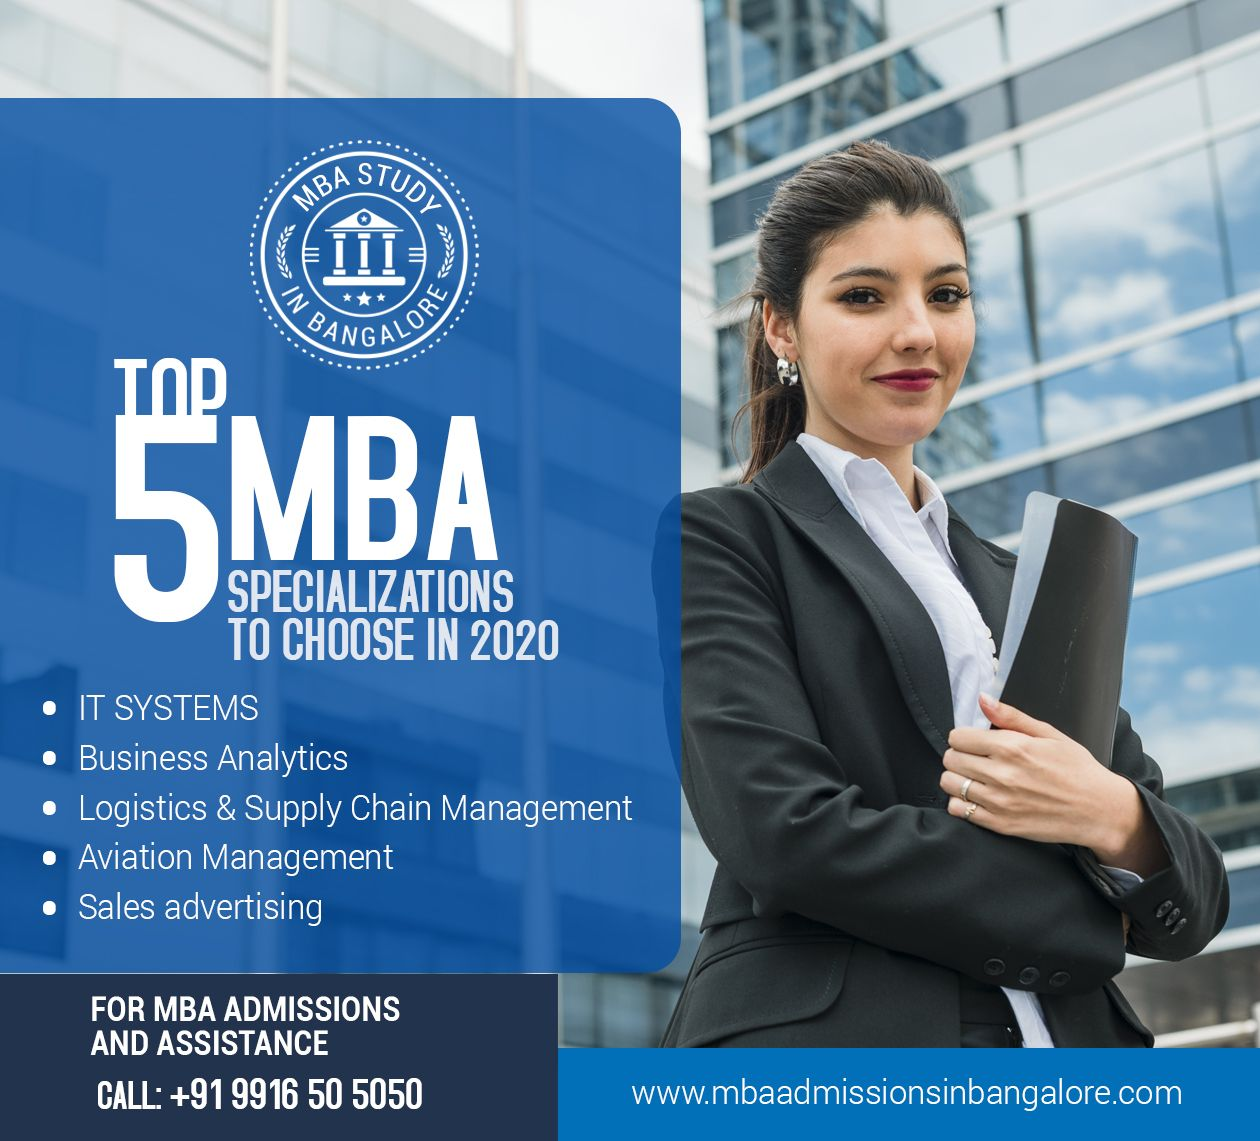 Mba colleges in Bangalore 2020 in 2020 Top colleges, Mba